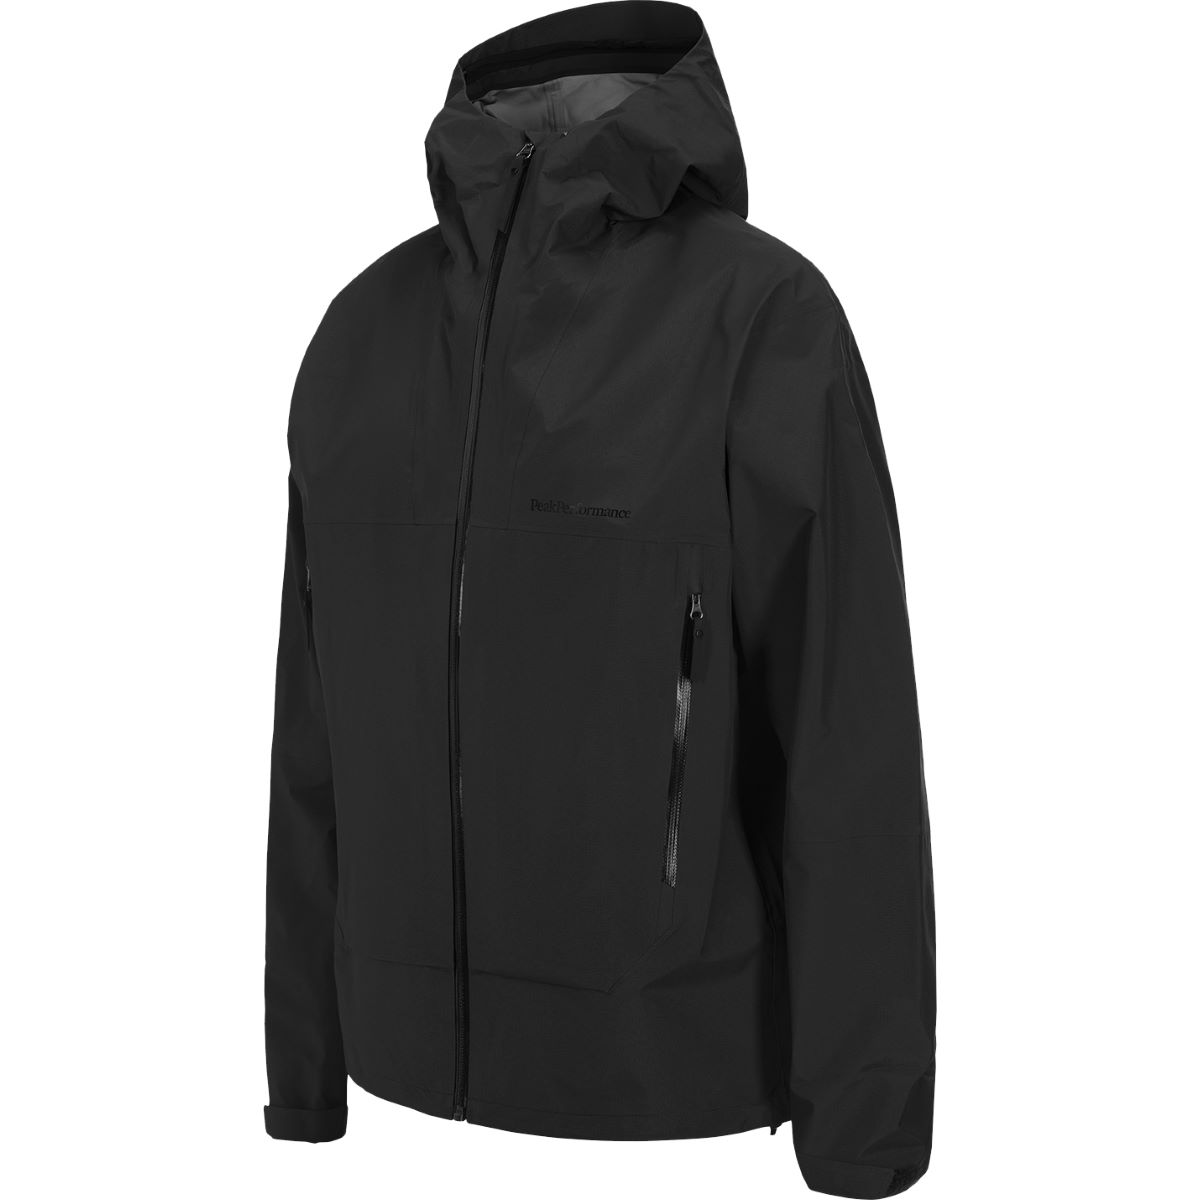 Peak Performance Northern Jacket - L Black | Waterproof Jackets